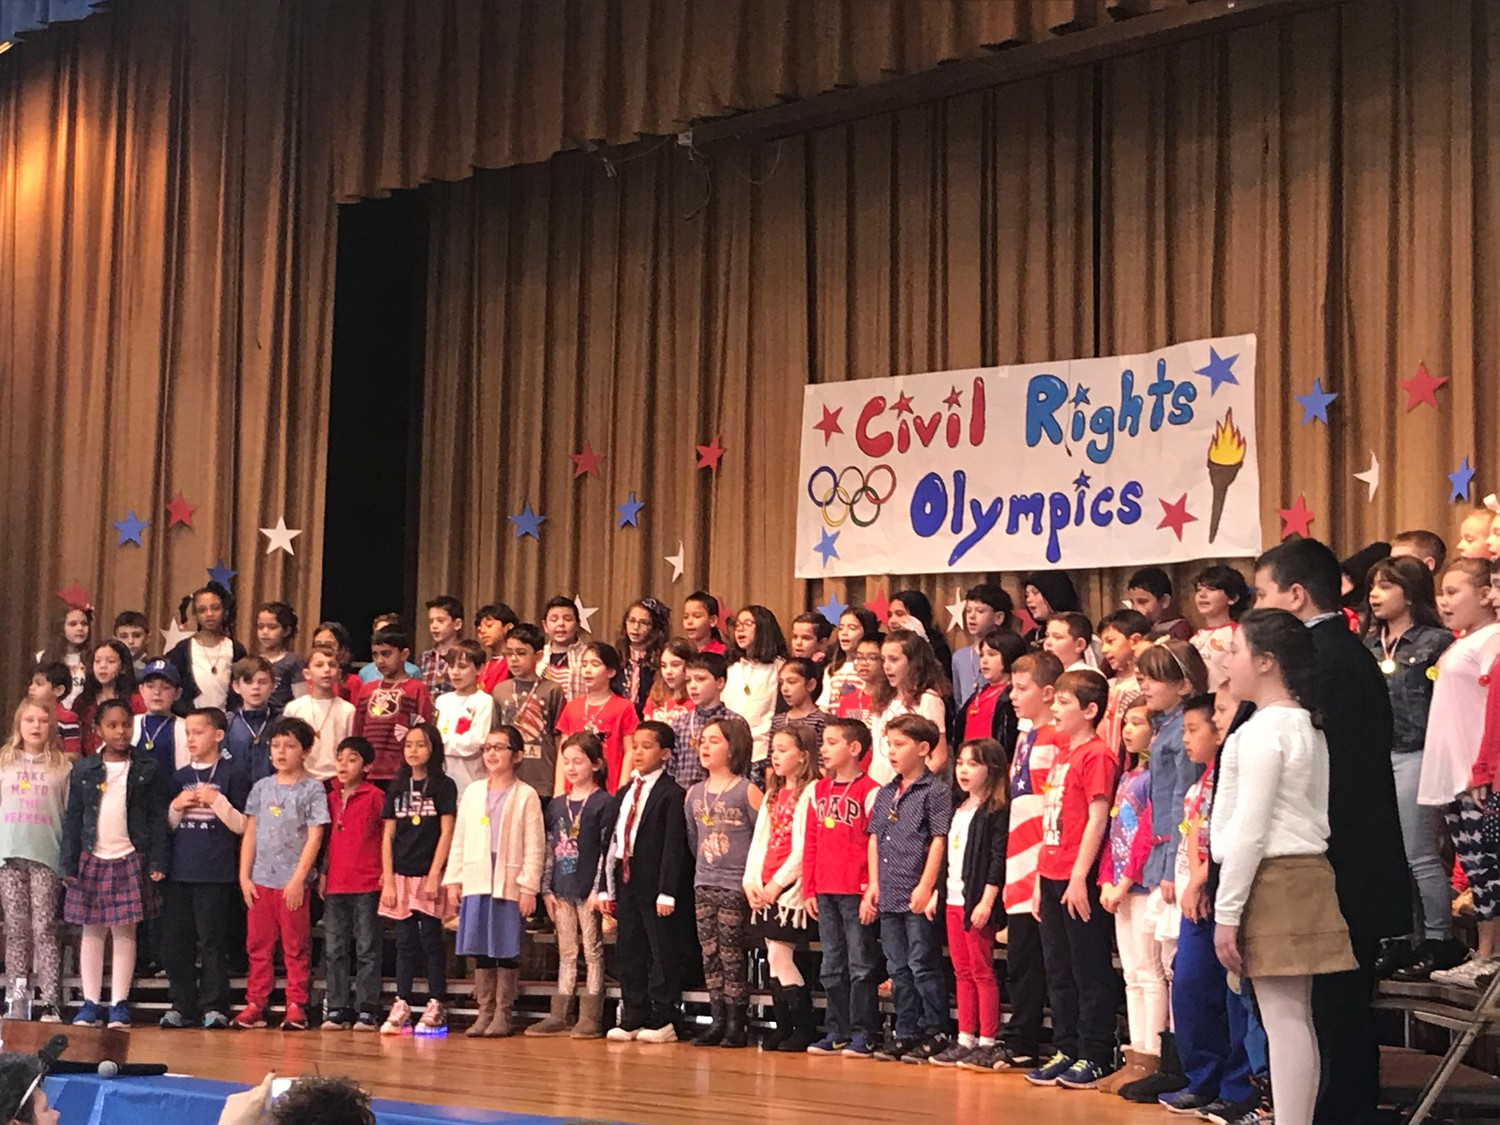 Marion Street School third-graders performed songs and skits in the Civil Rights Olympics, and presented visitor Joseph McNeil with a gold medal at the end of their performance. McNeil was part of the Greensboro, N.C. sit-ins at Woolworth's, in protest of segregation in 1960